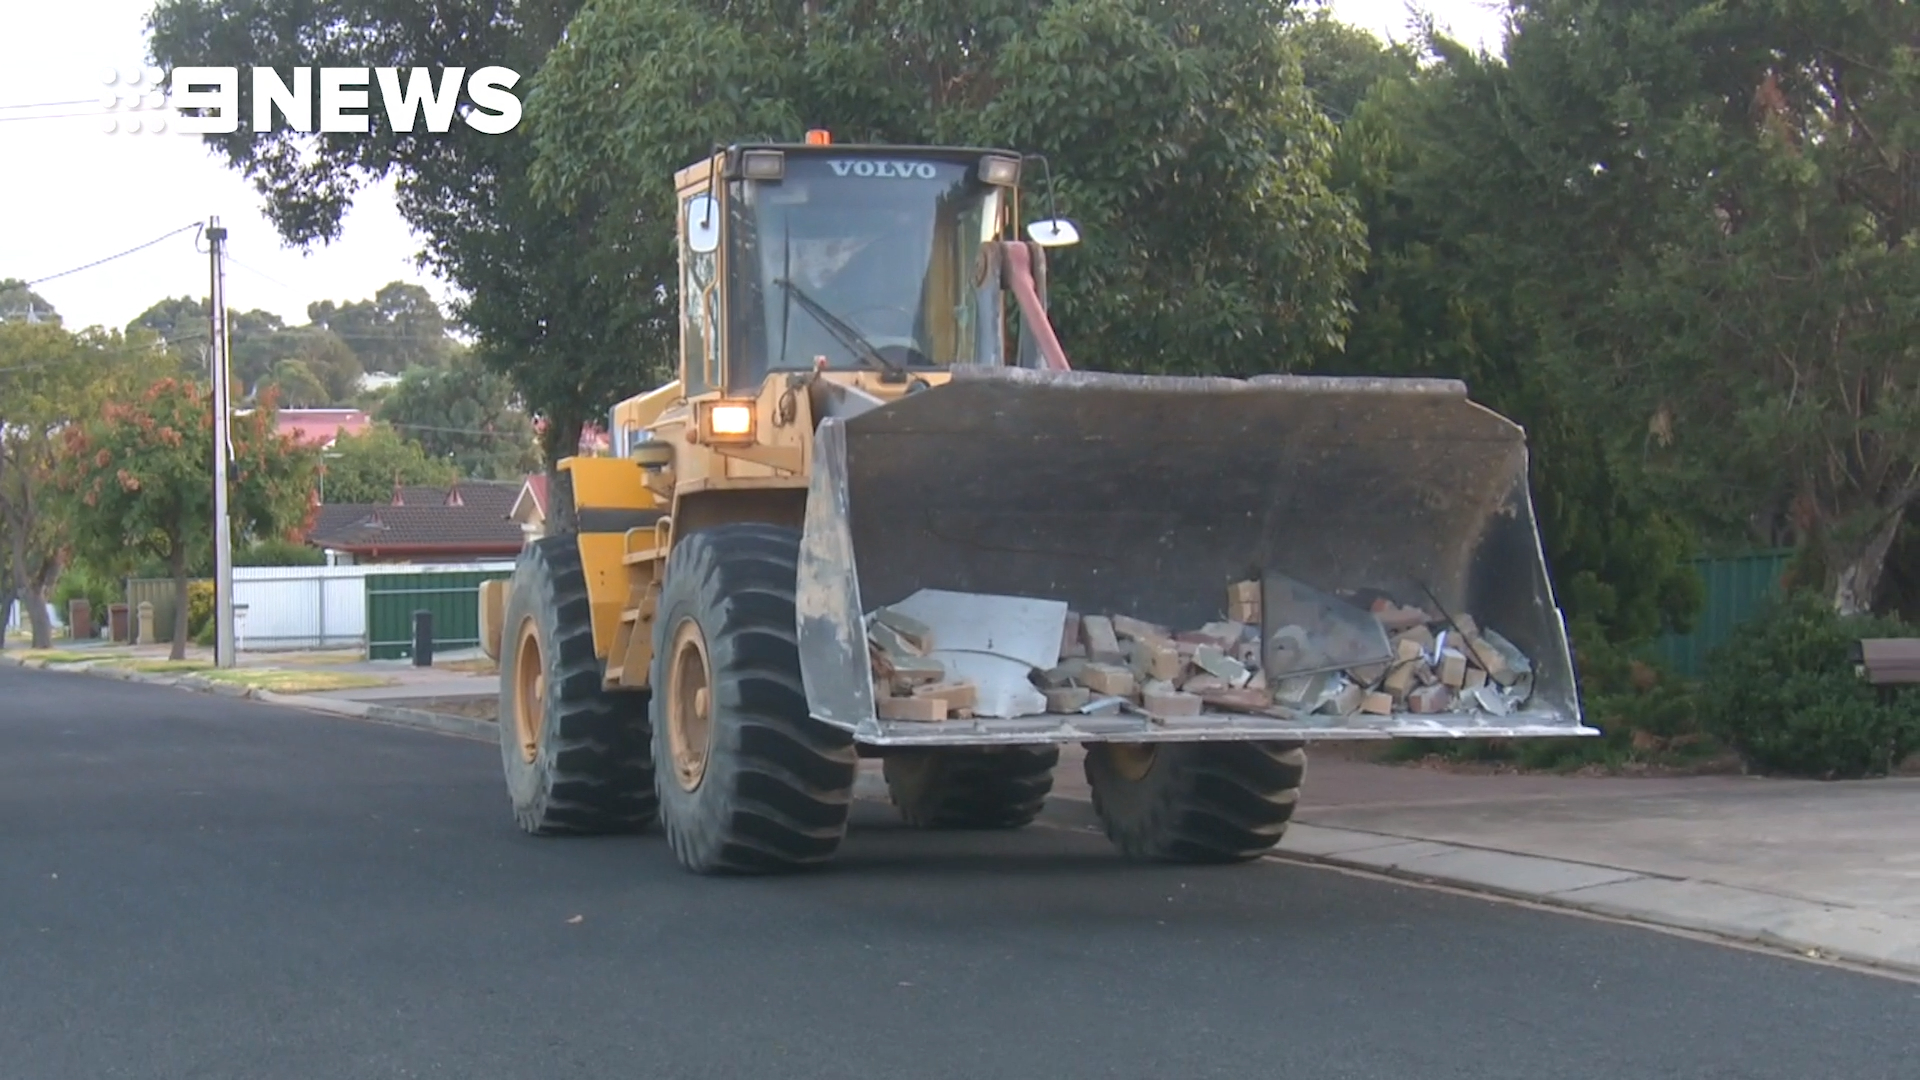 News Adelaide: Stolen front-end loader driven into hotel in